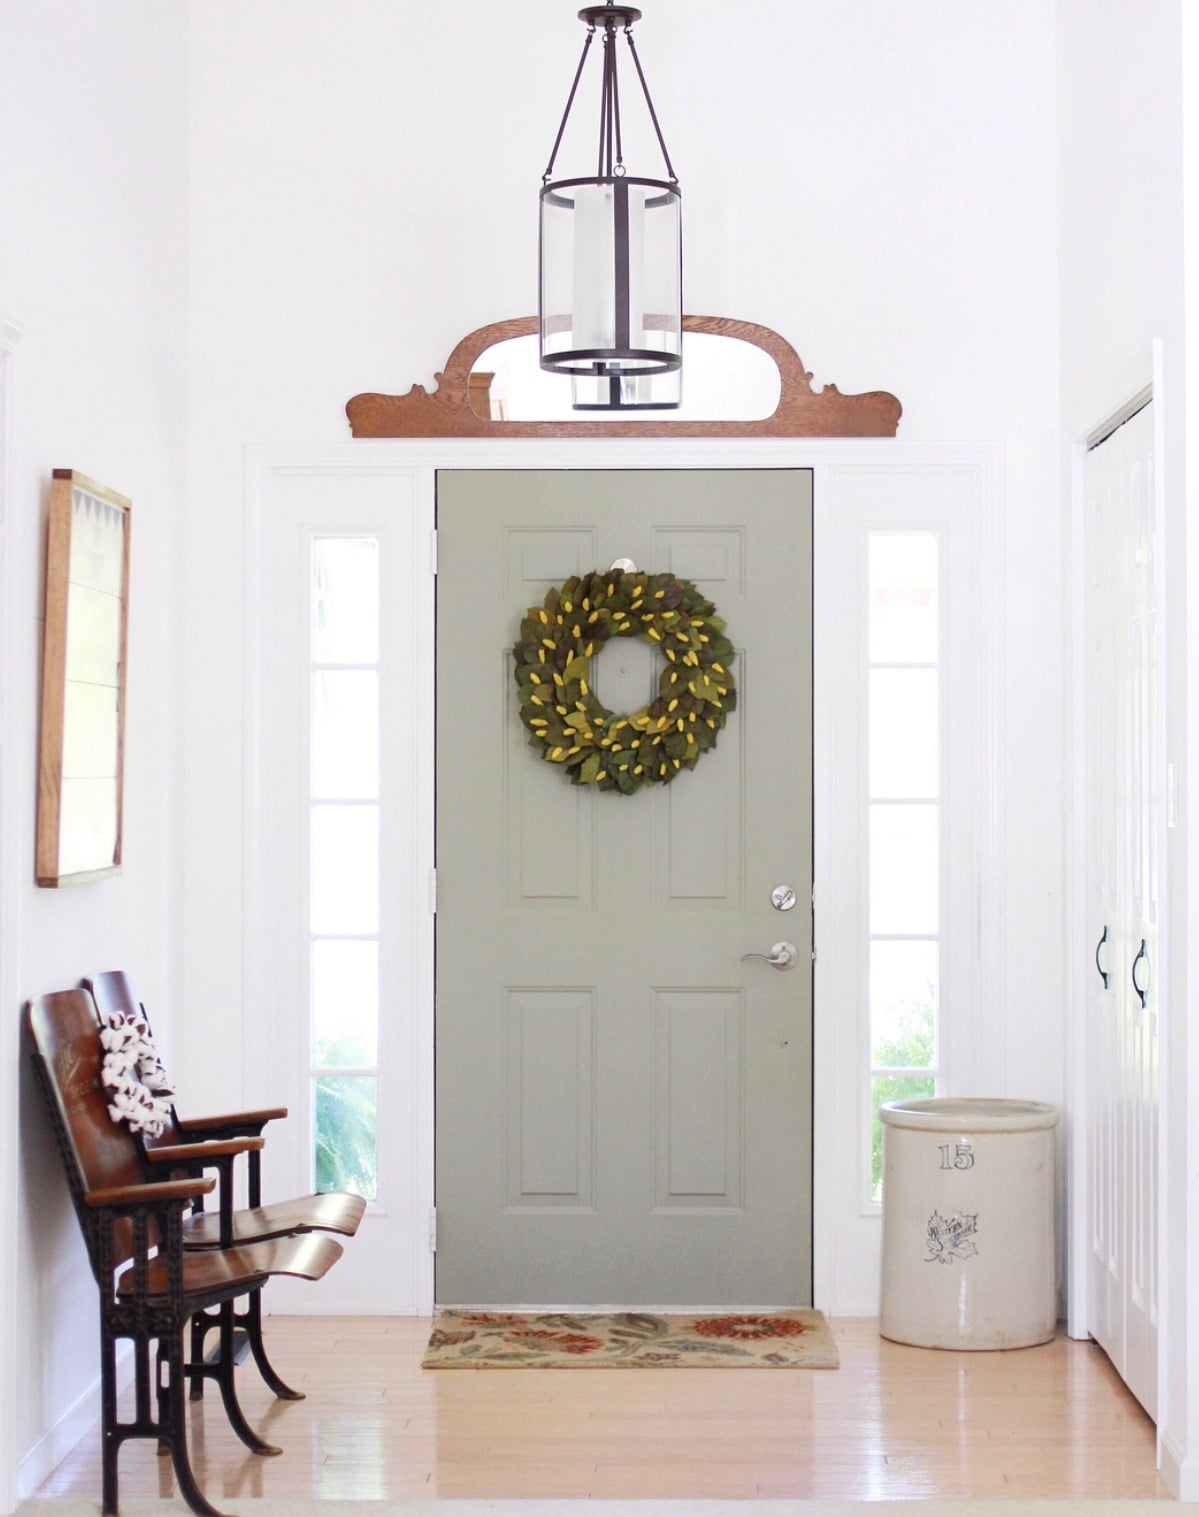 Fusion mineral paint colors used on an exterior door in color Lichen